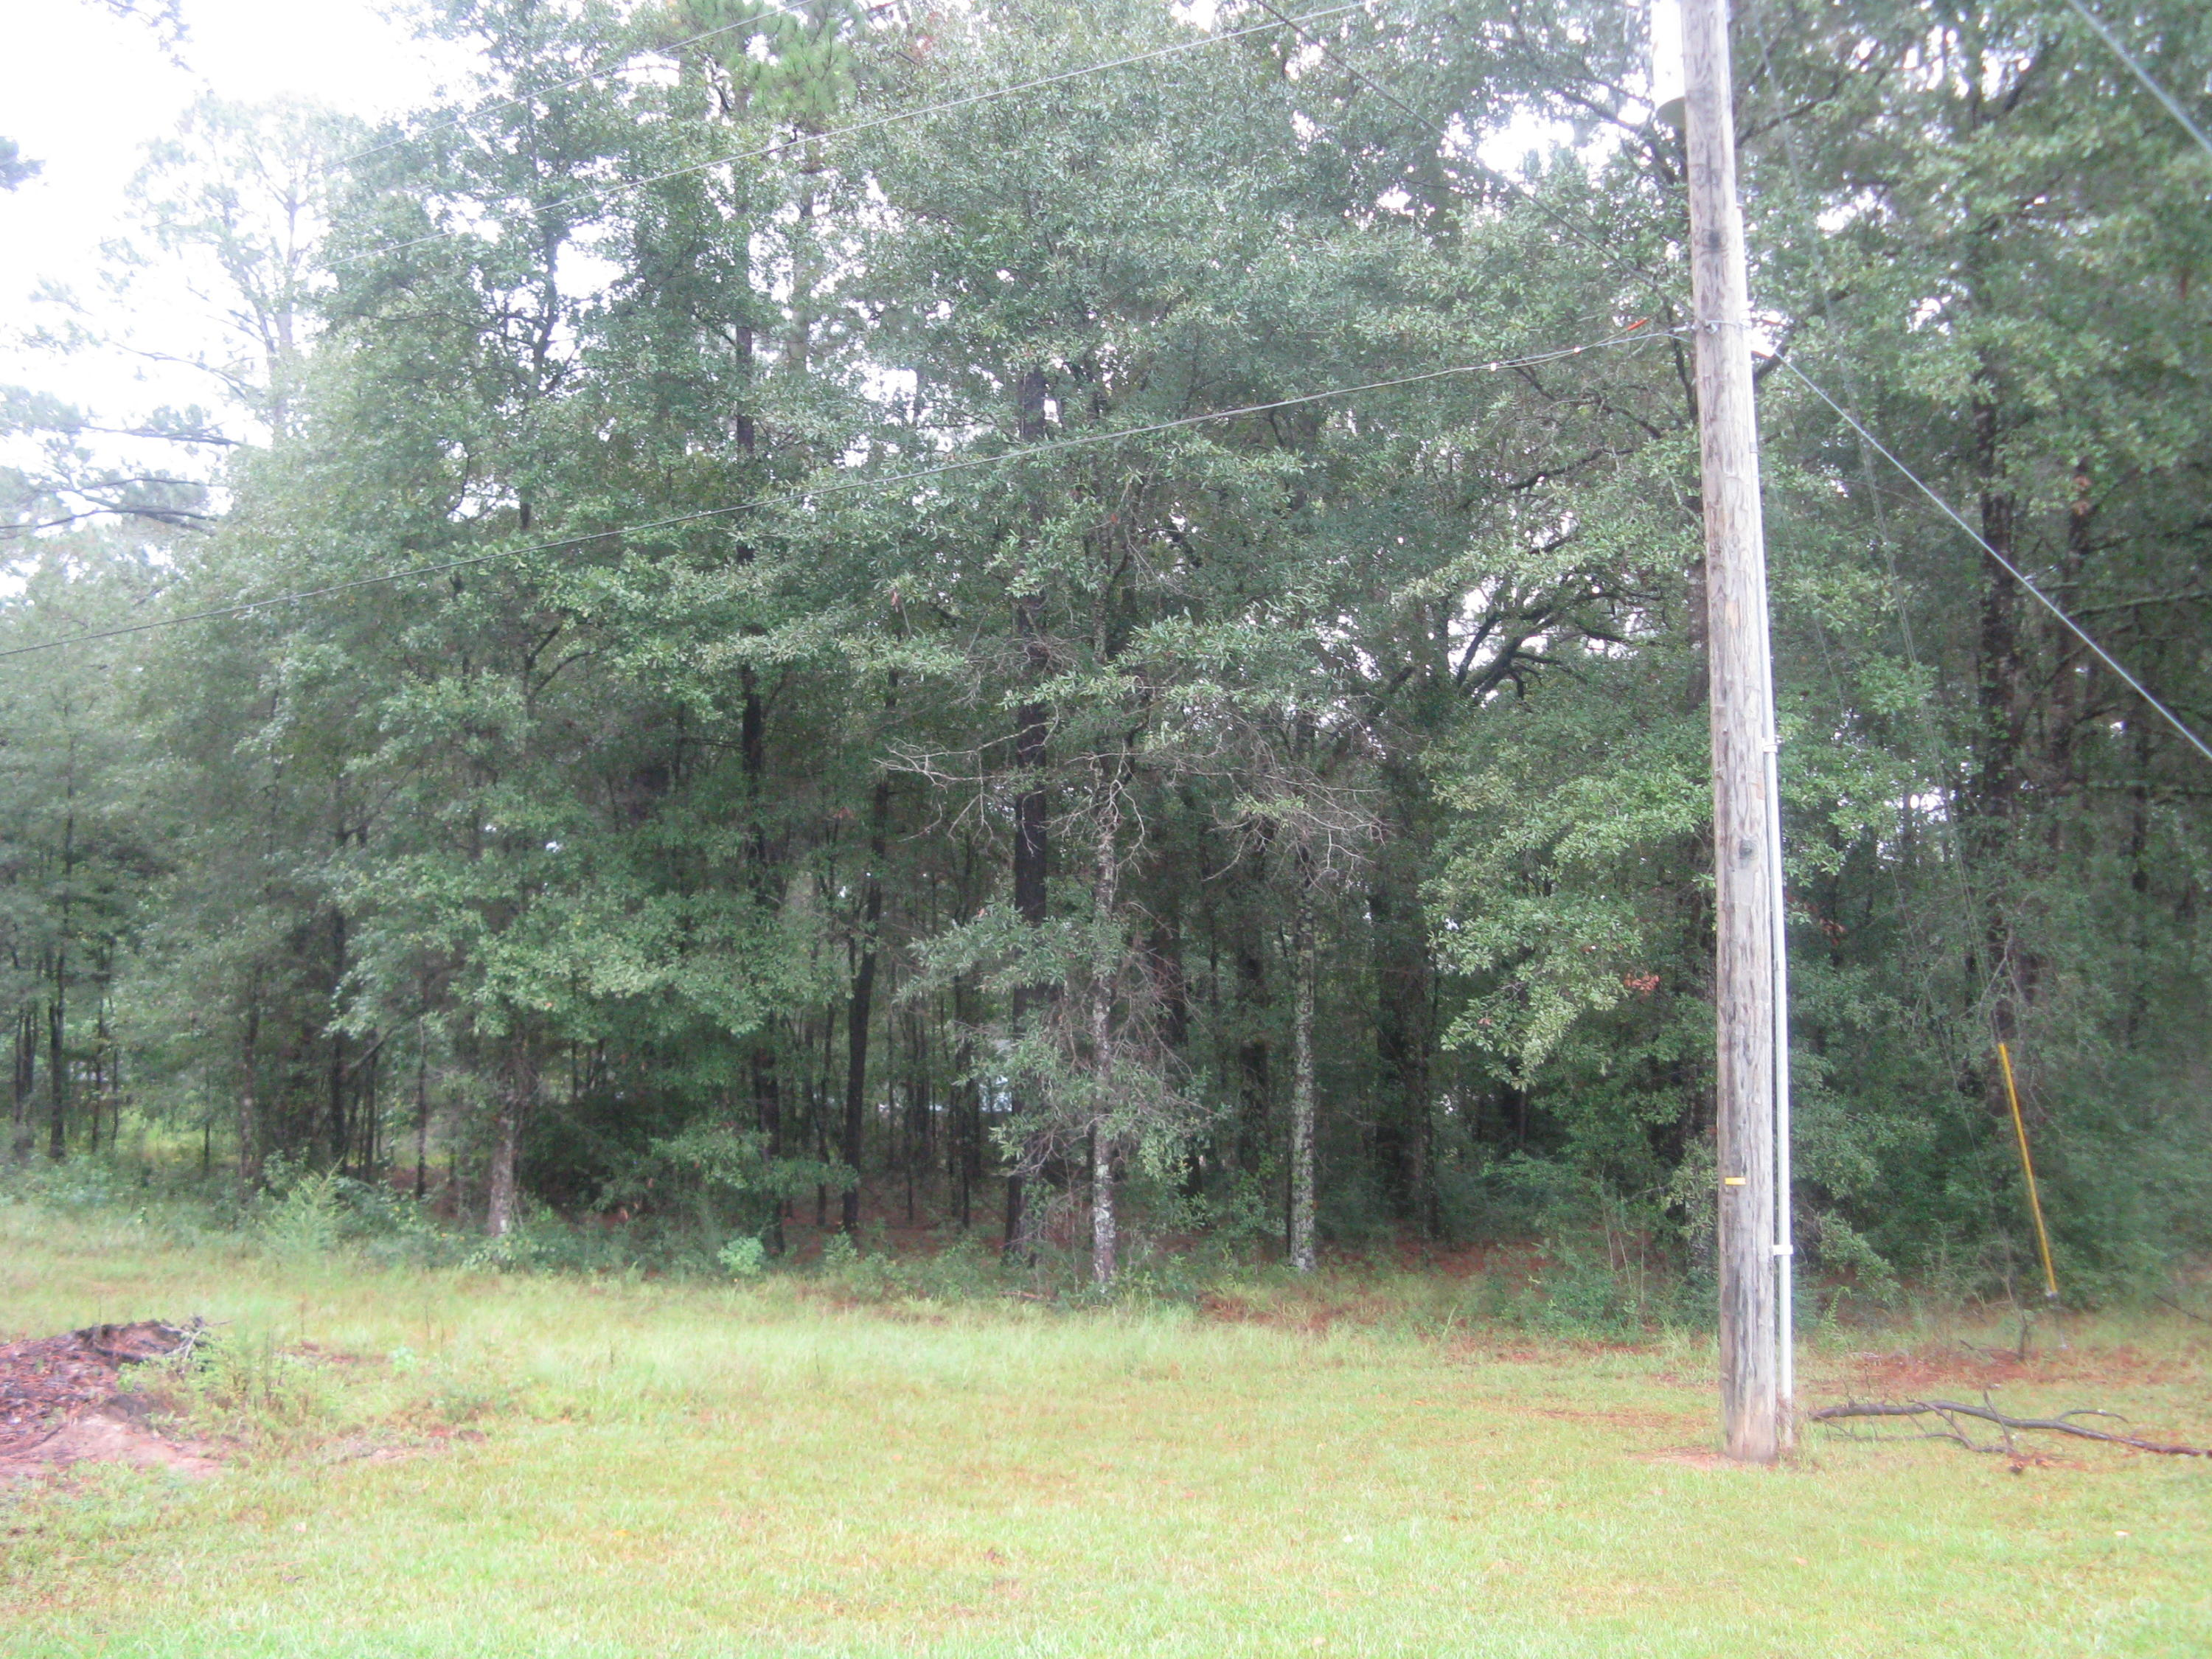 DeRidder land for sale,  TBD TWIN OAKS RD, DeRidder LA - $30,000